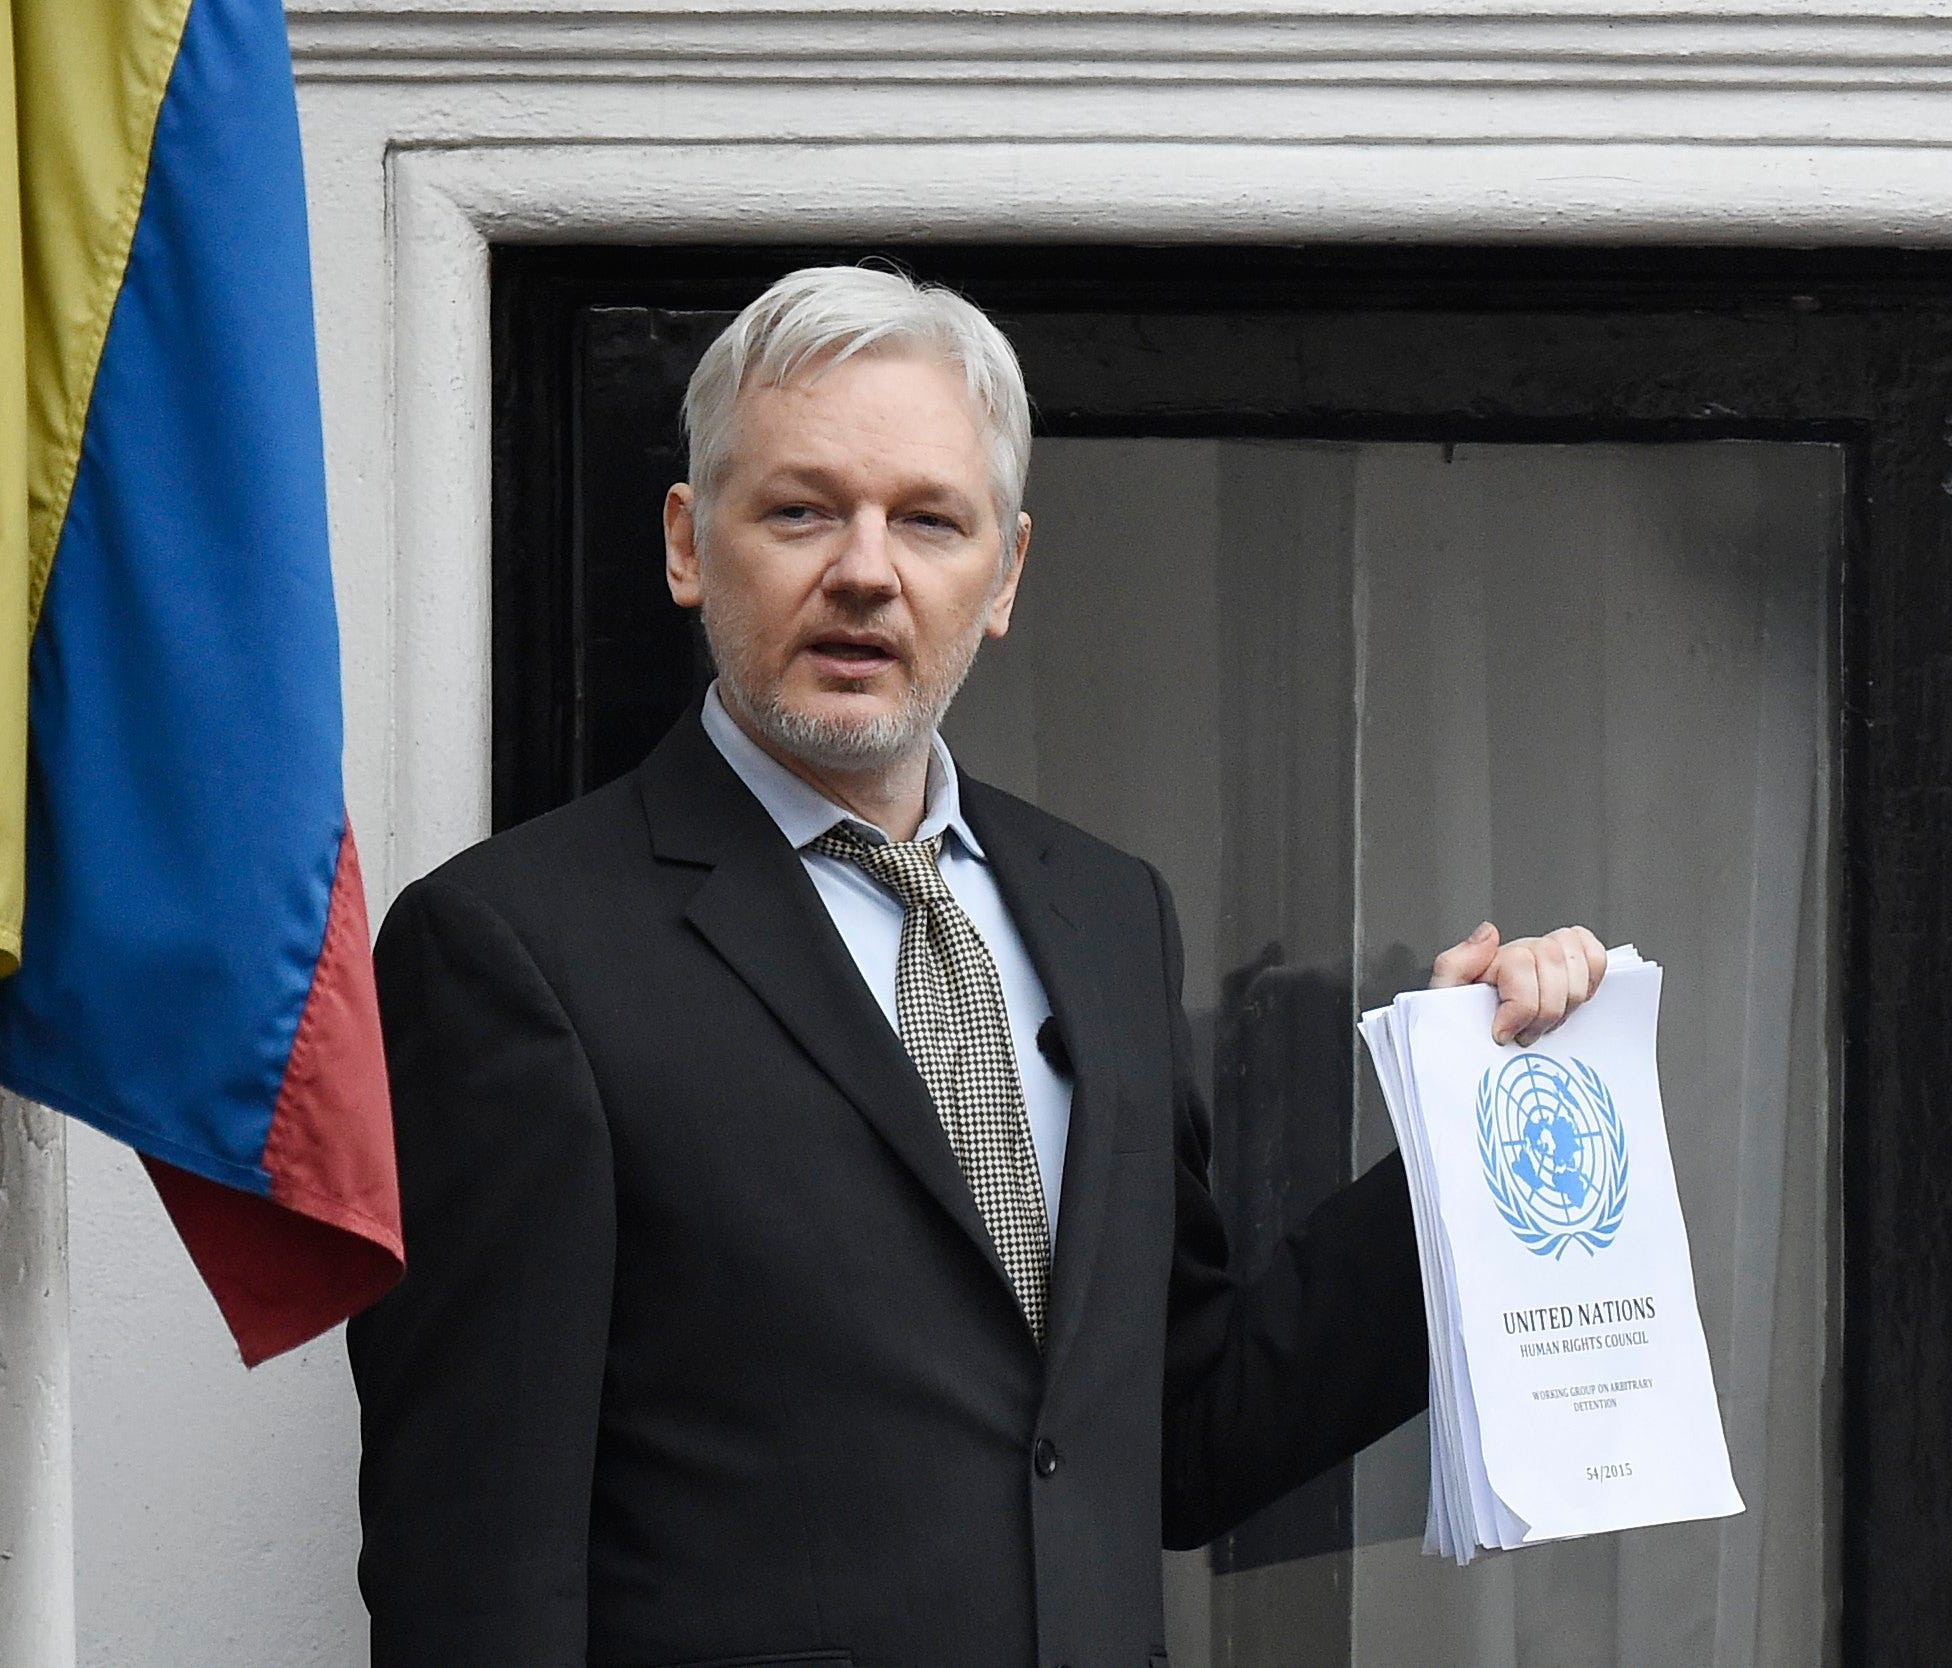 Julian Assange speaks to the media from a balcony of the Ecuadorian Embassy in London, Britain, Feb. 5, 2016.